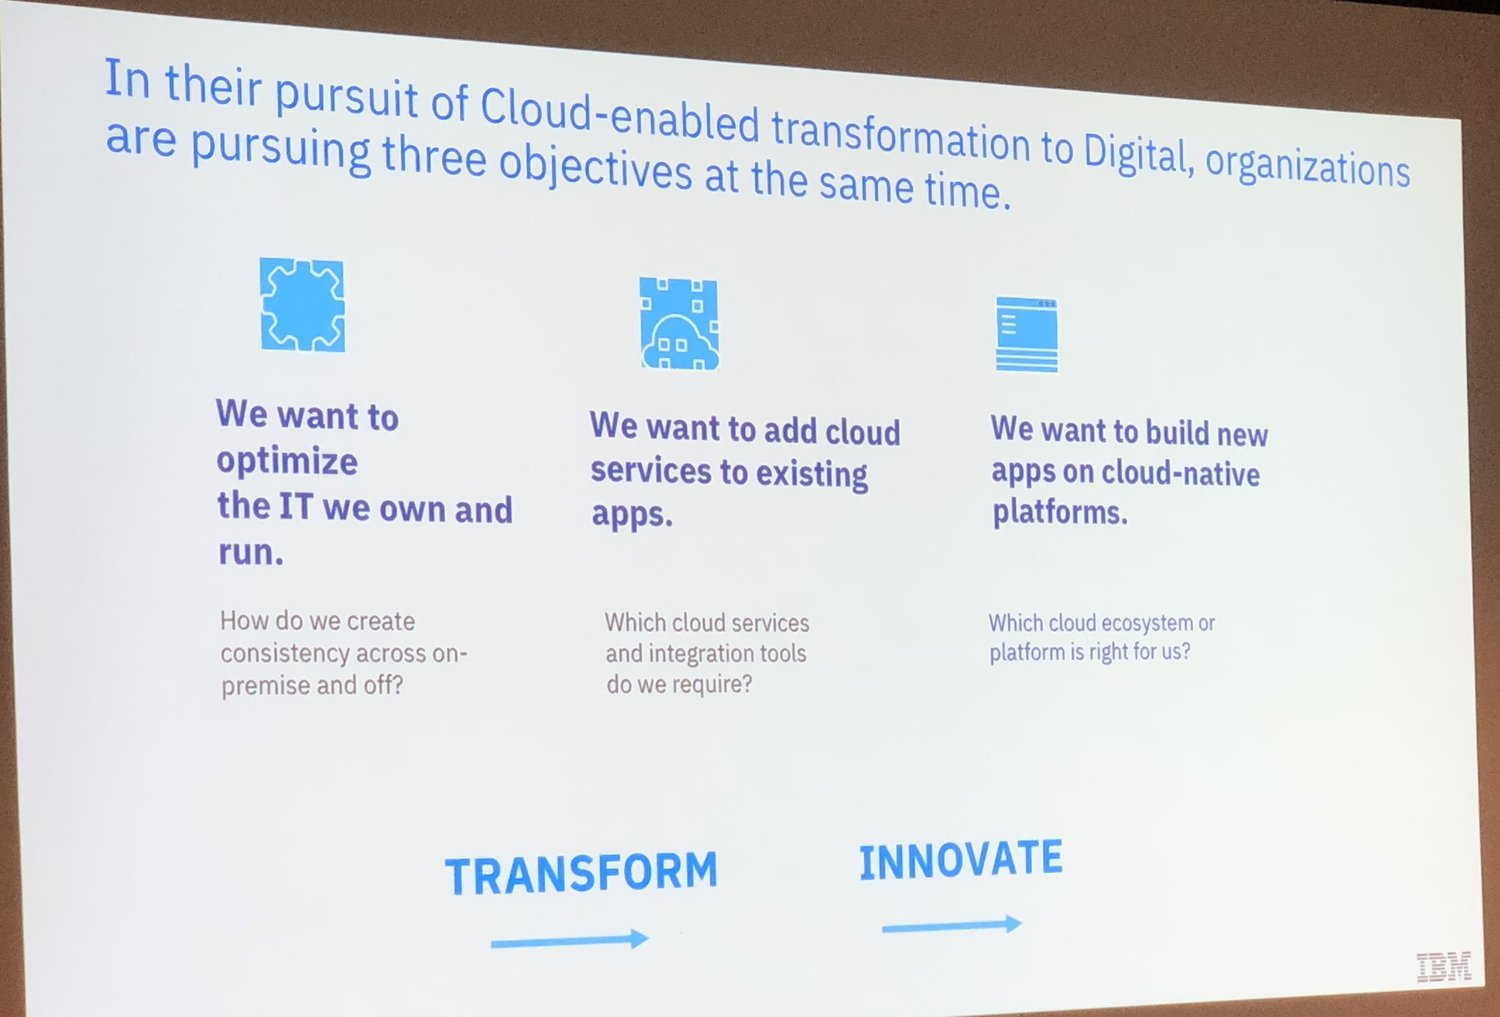 IMB Digital Transformation.jpg